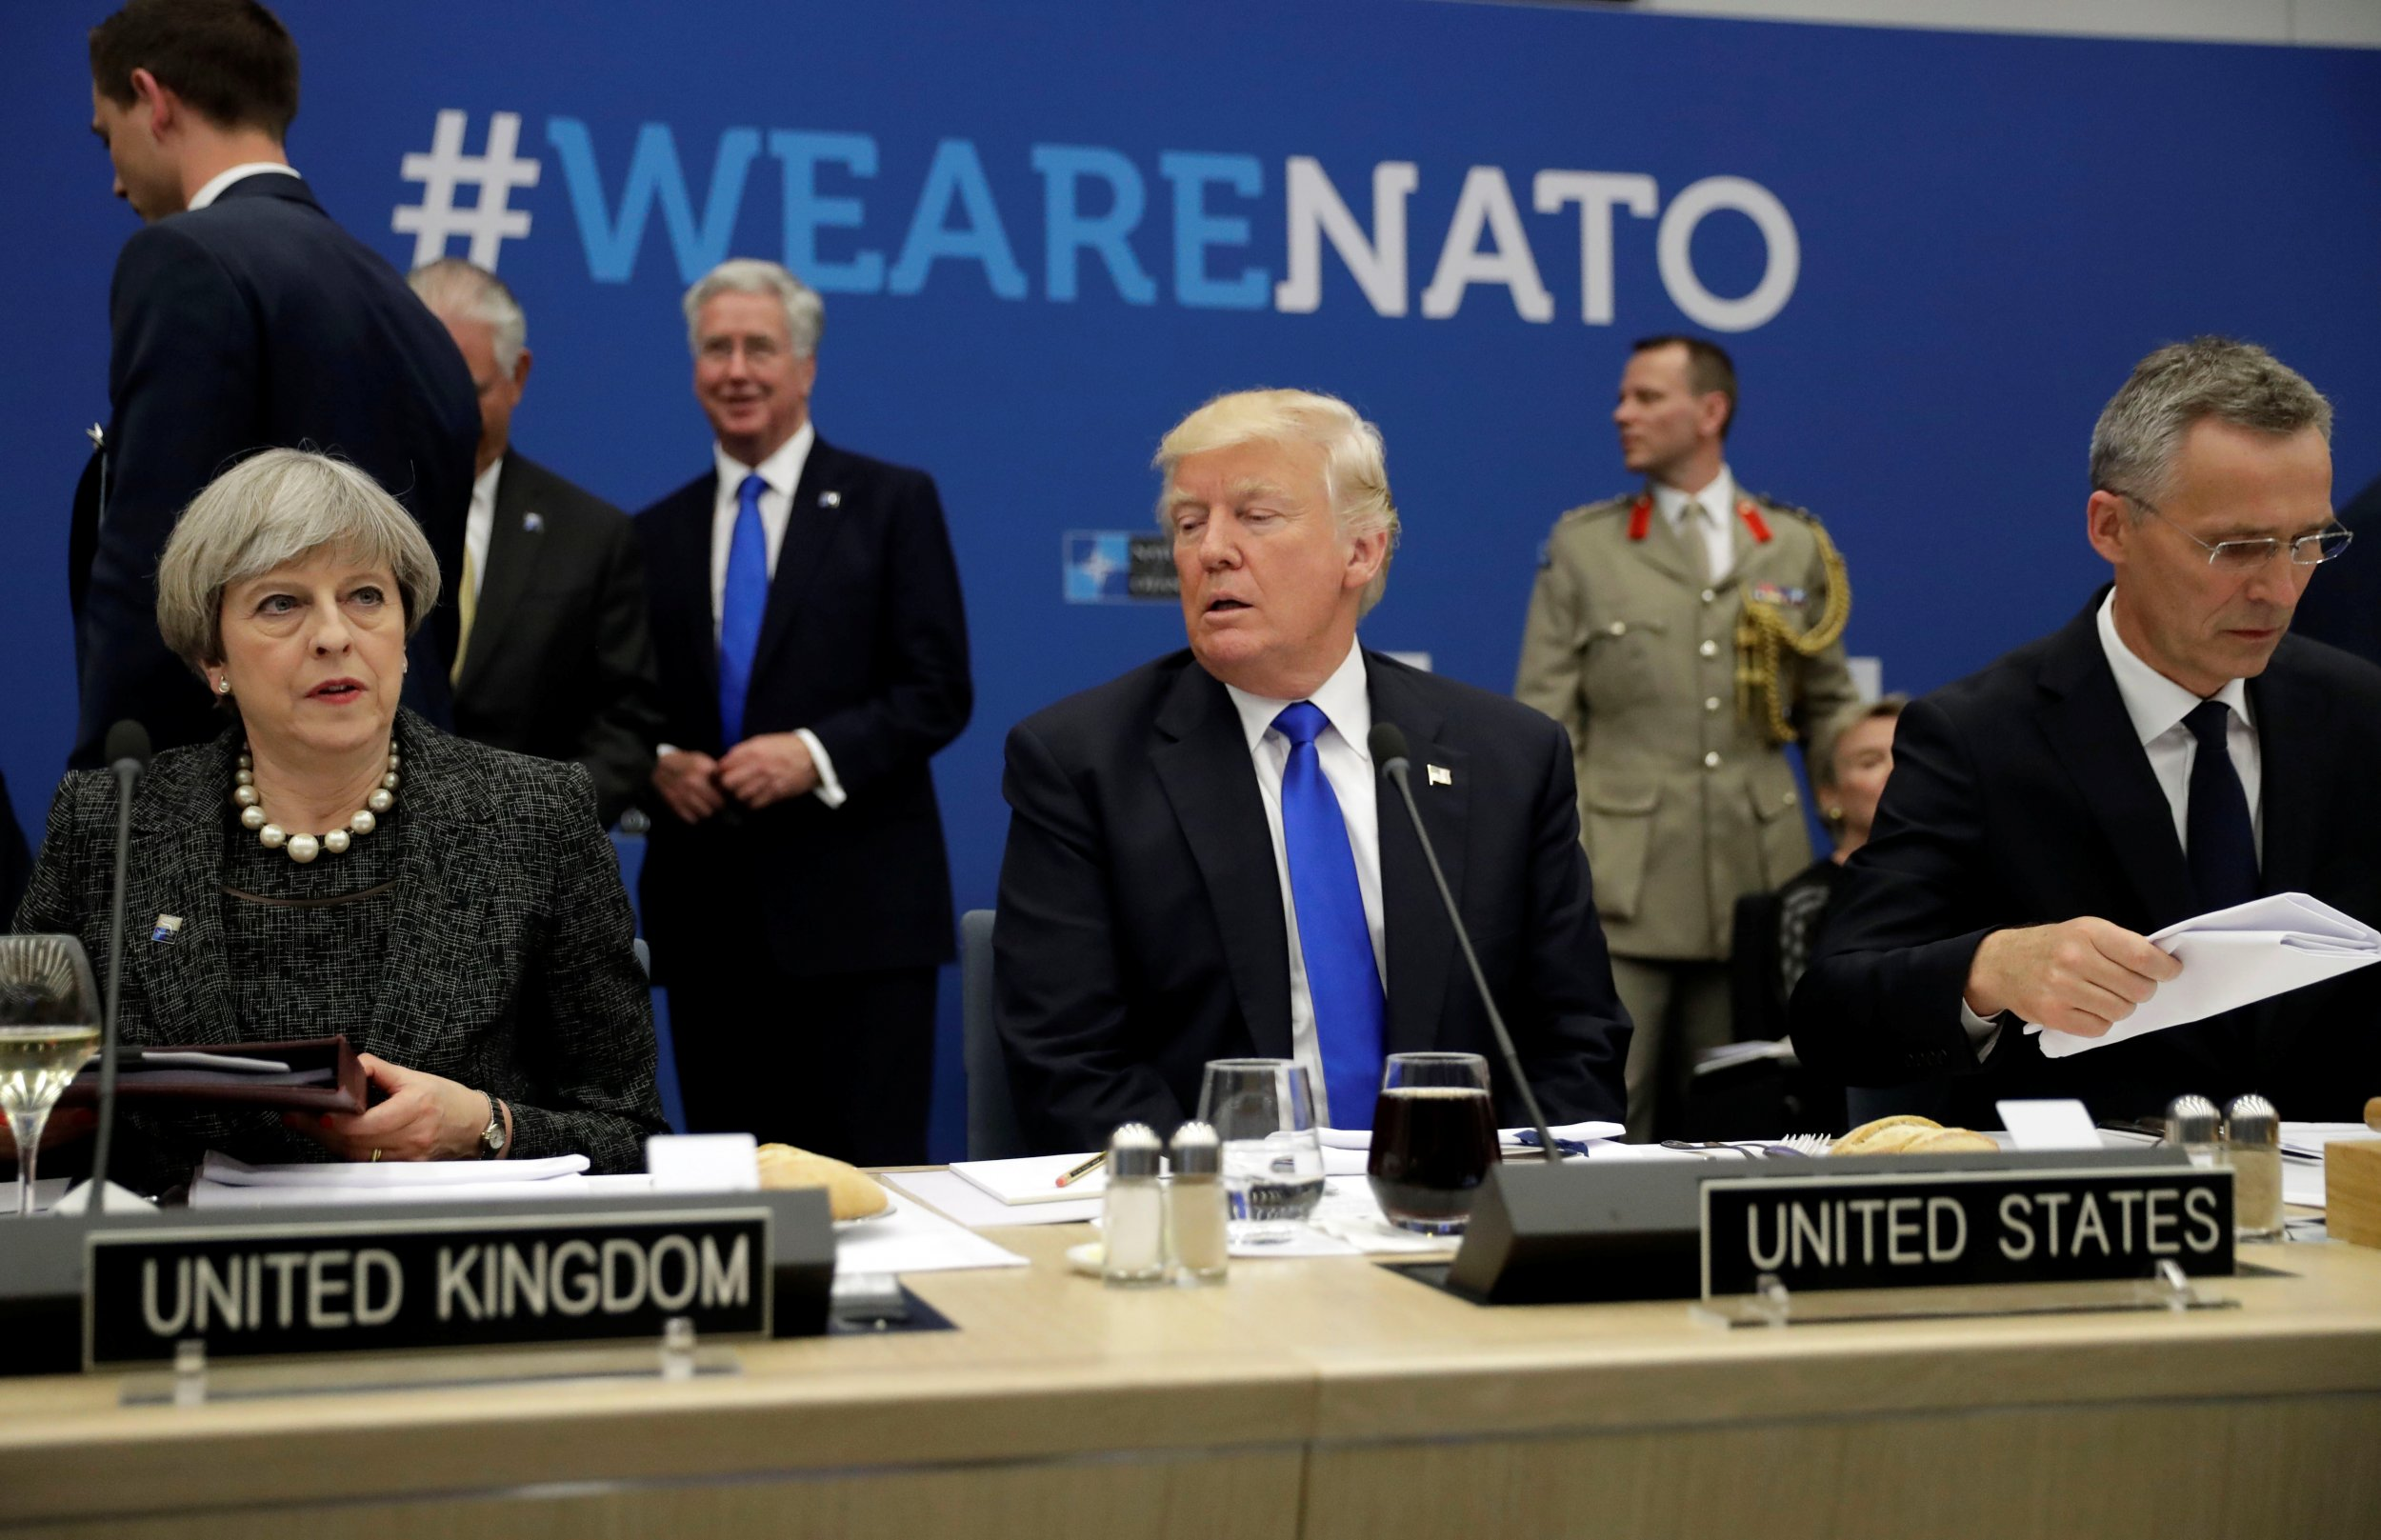 Trump to NATO: Pay Up and Fight ISIS